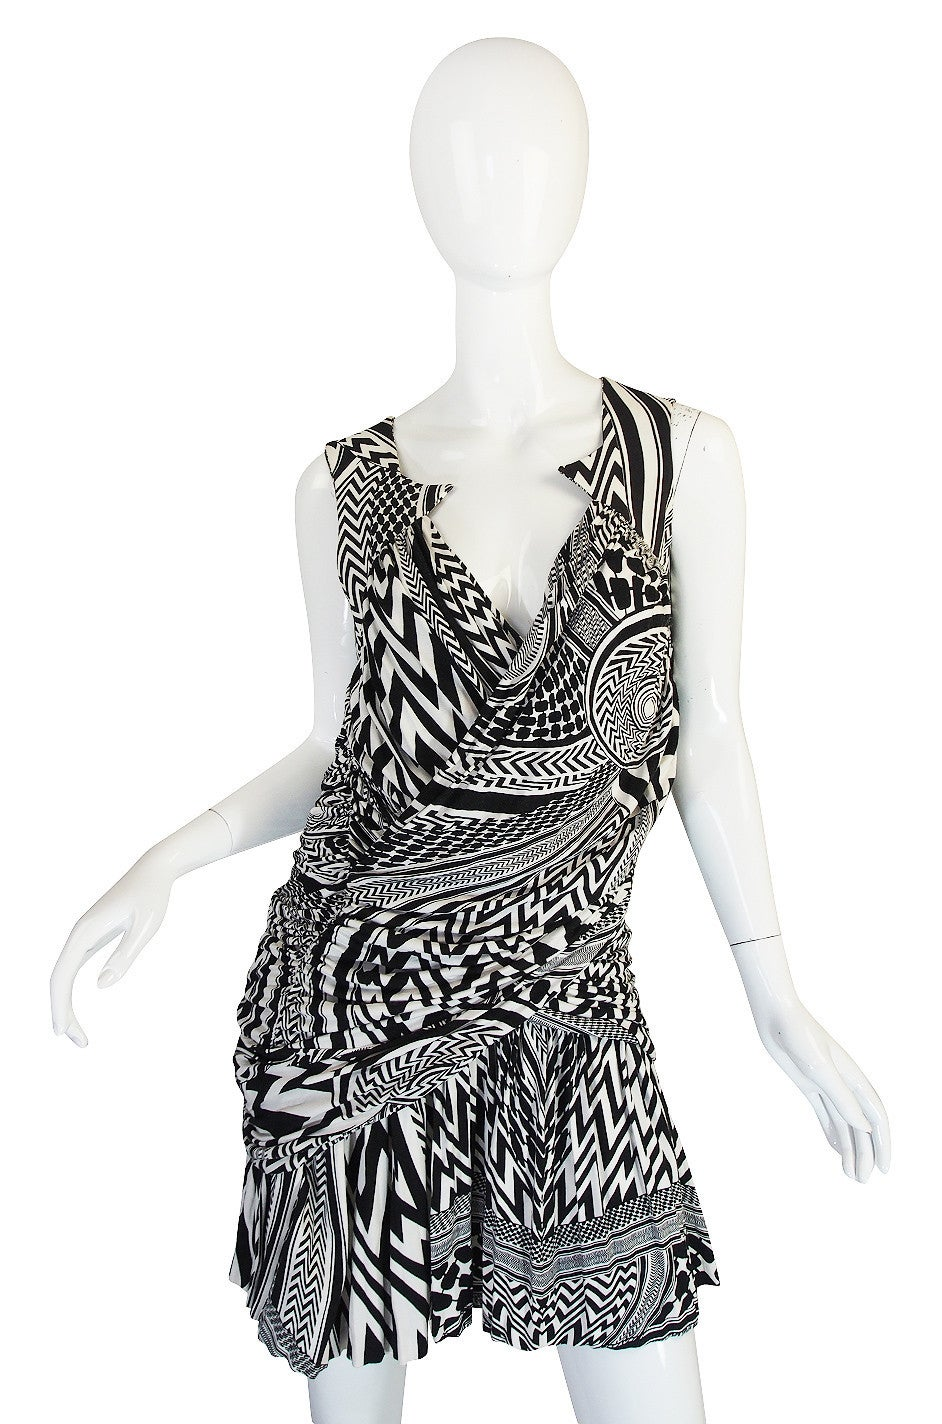 S/S 2010 Givenchy Tribal Print Mini Dress NWT 3